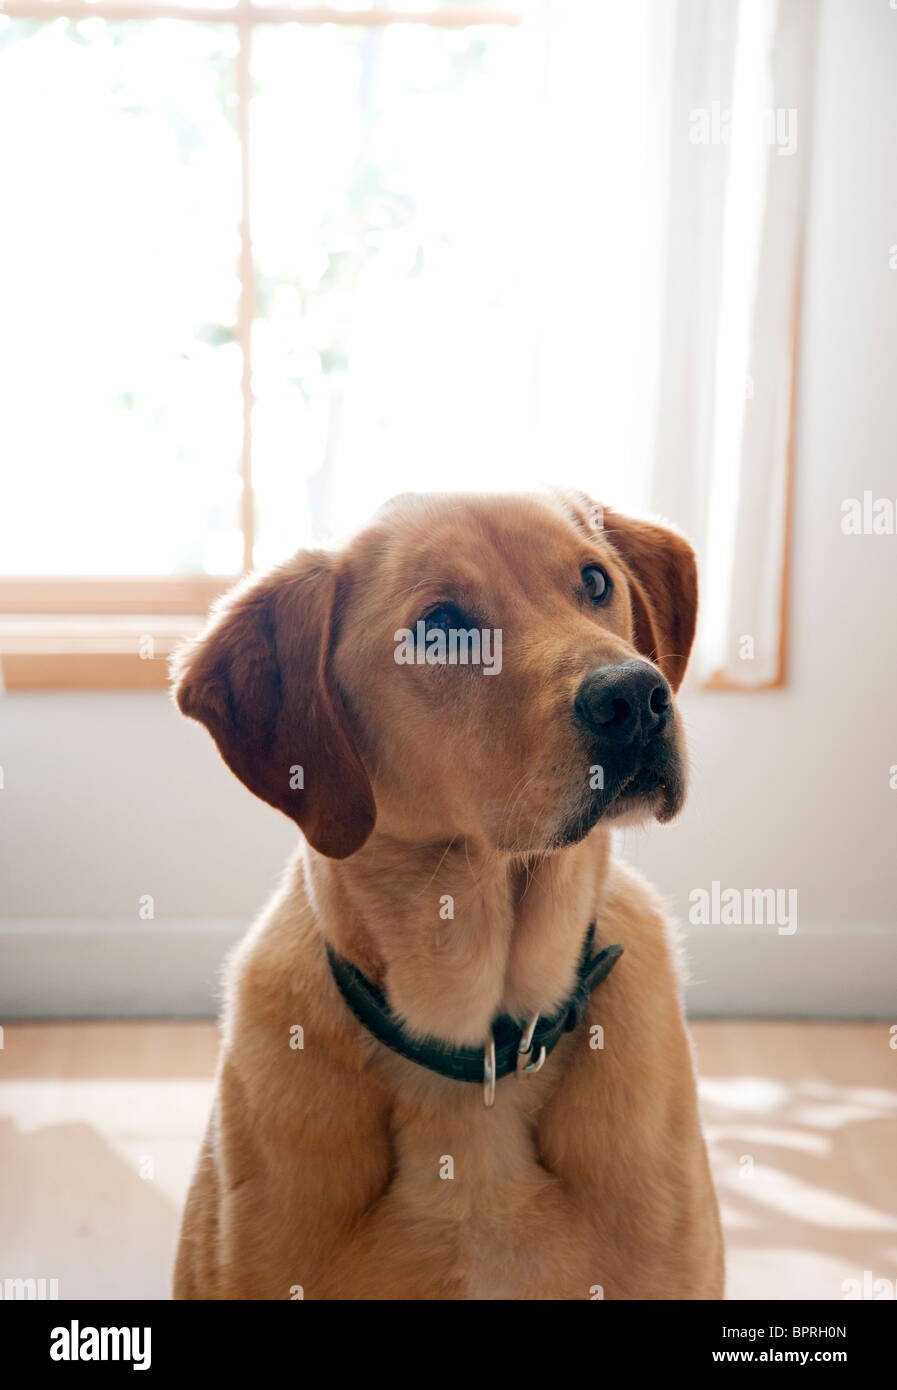 cute dog inside home - Stock Image